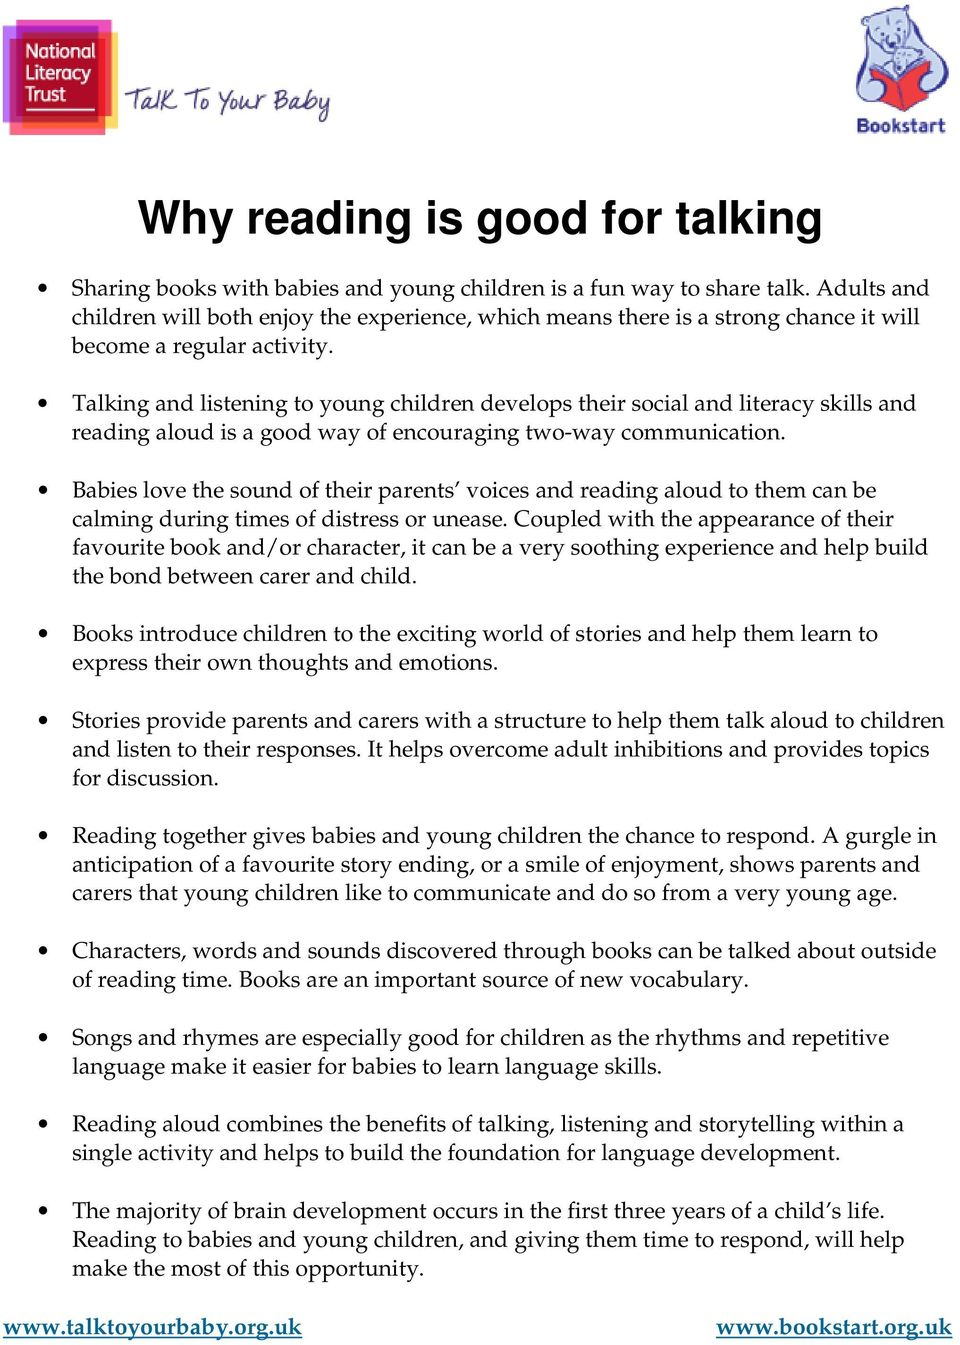 Talking and listening to young children develops their social and literacy skills and reading aloud is a good way of encouraging two-way communication.